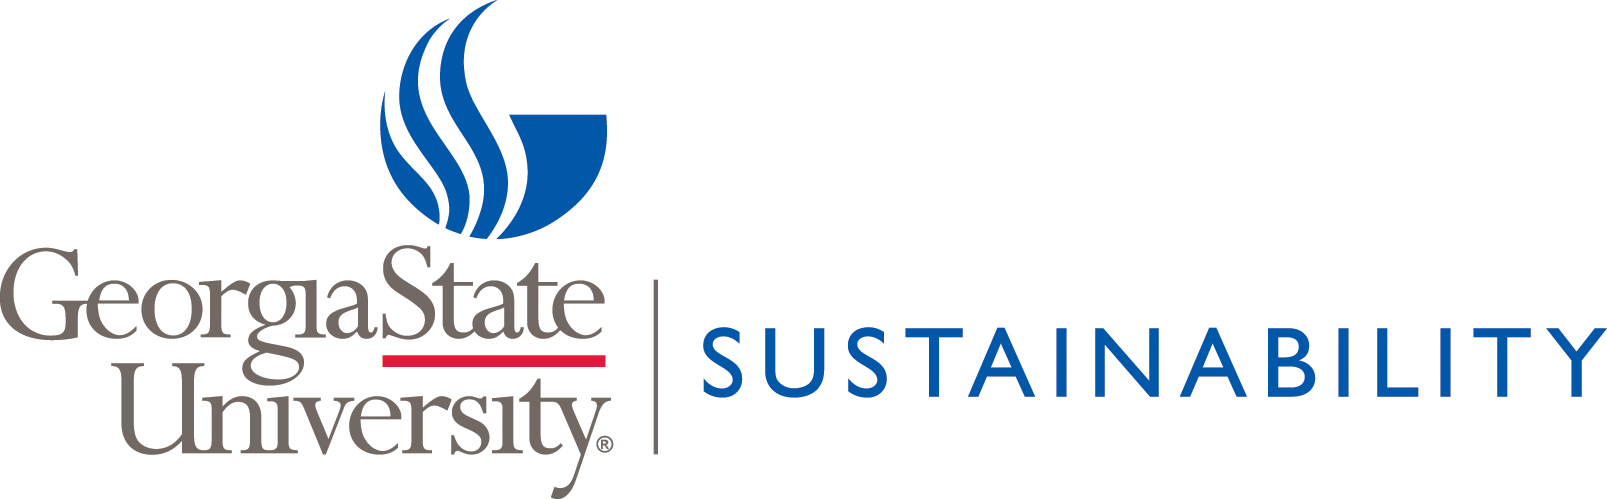 Georgia State University - Sustainability